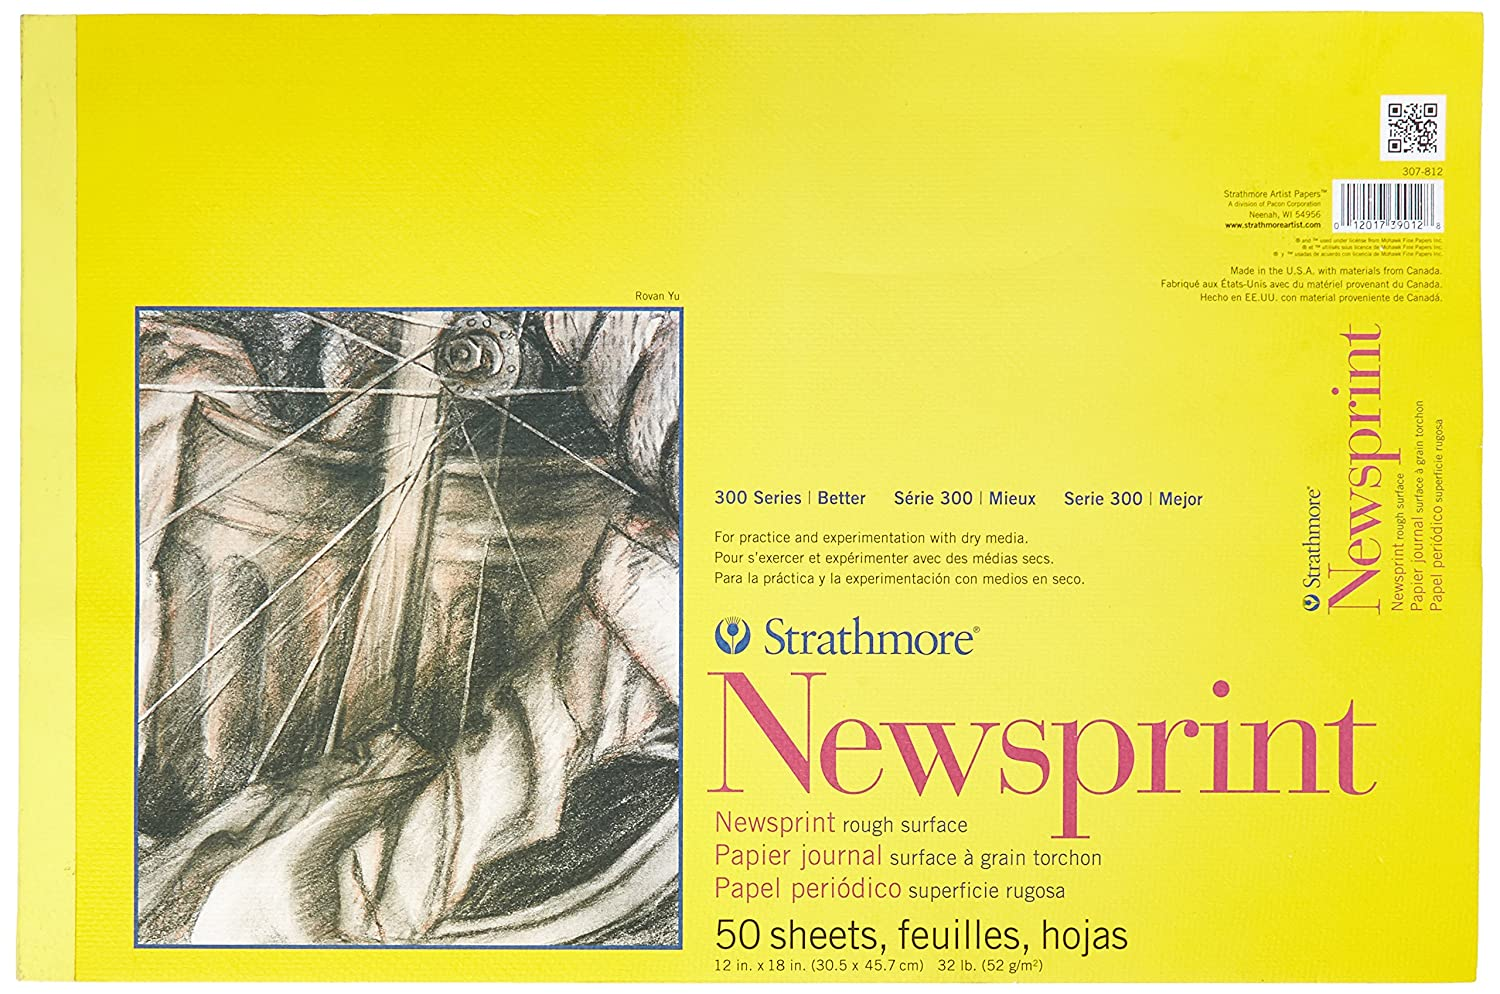 Strathmore 307-812 300 Series Newsprint Pad, Rough 12x18 Tape Bound, 50 Sheets Strathmore Paper